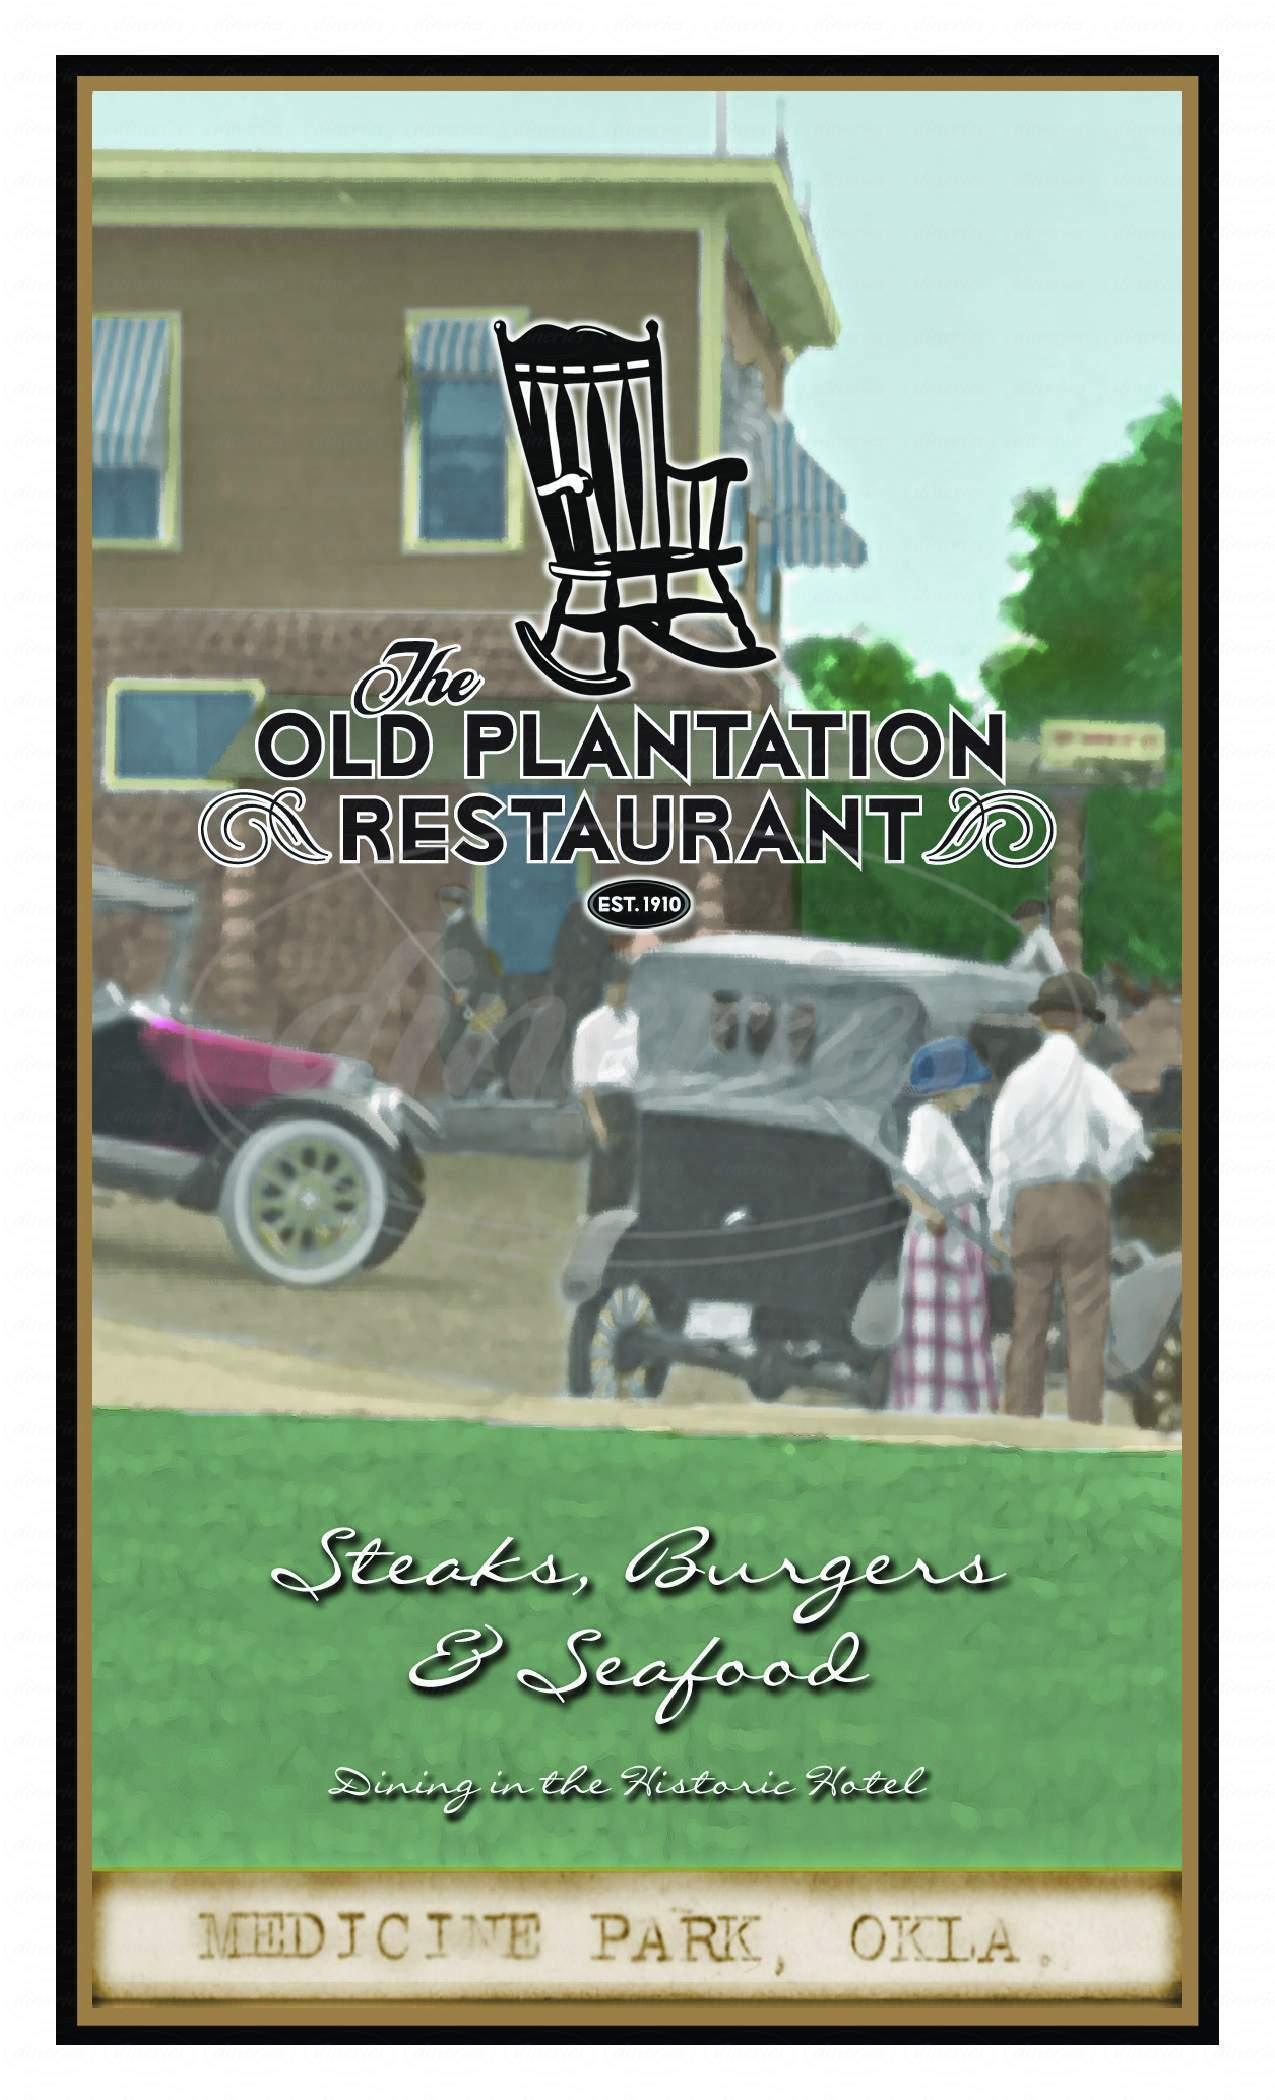 menu for The Old Plantation Restaurant